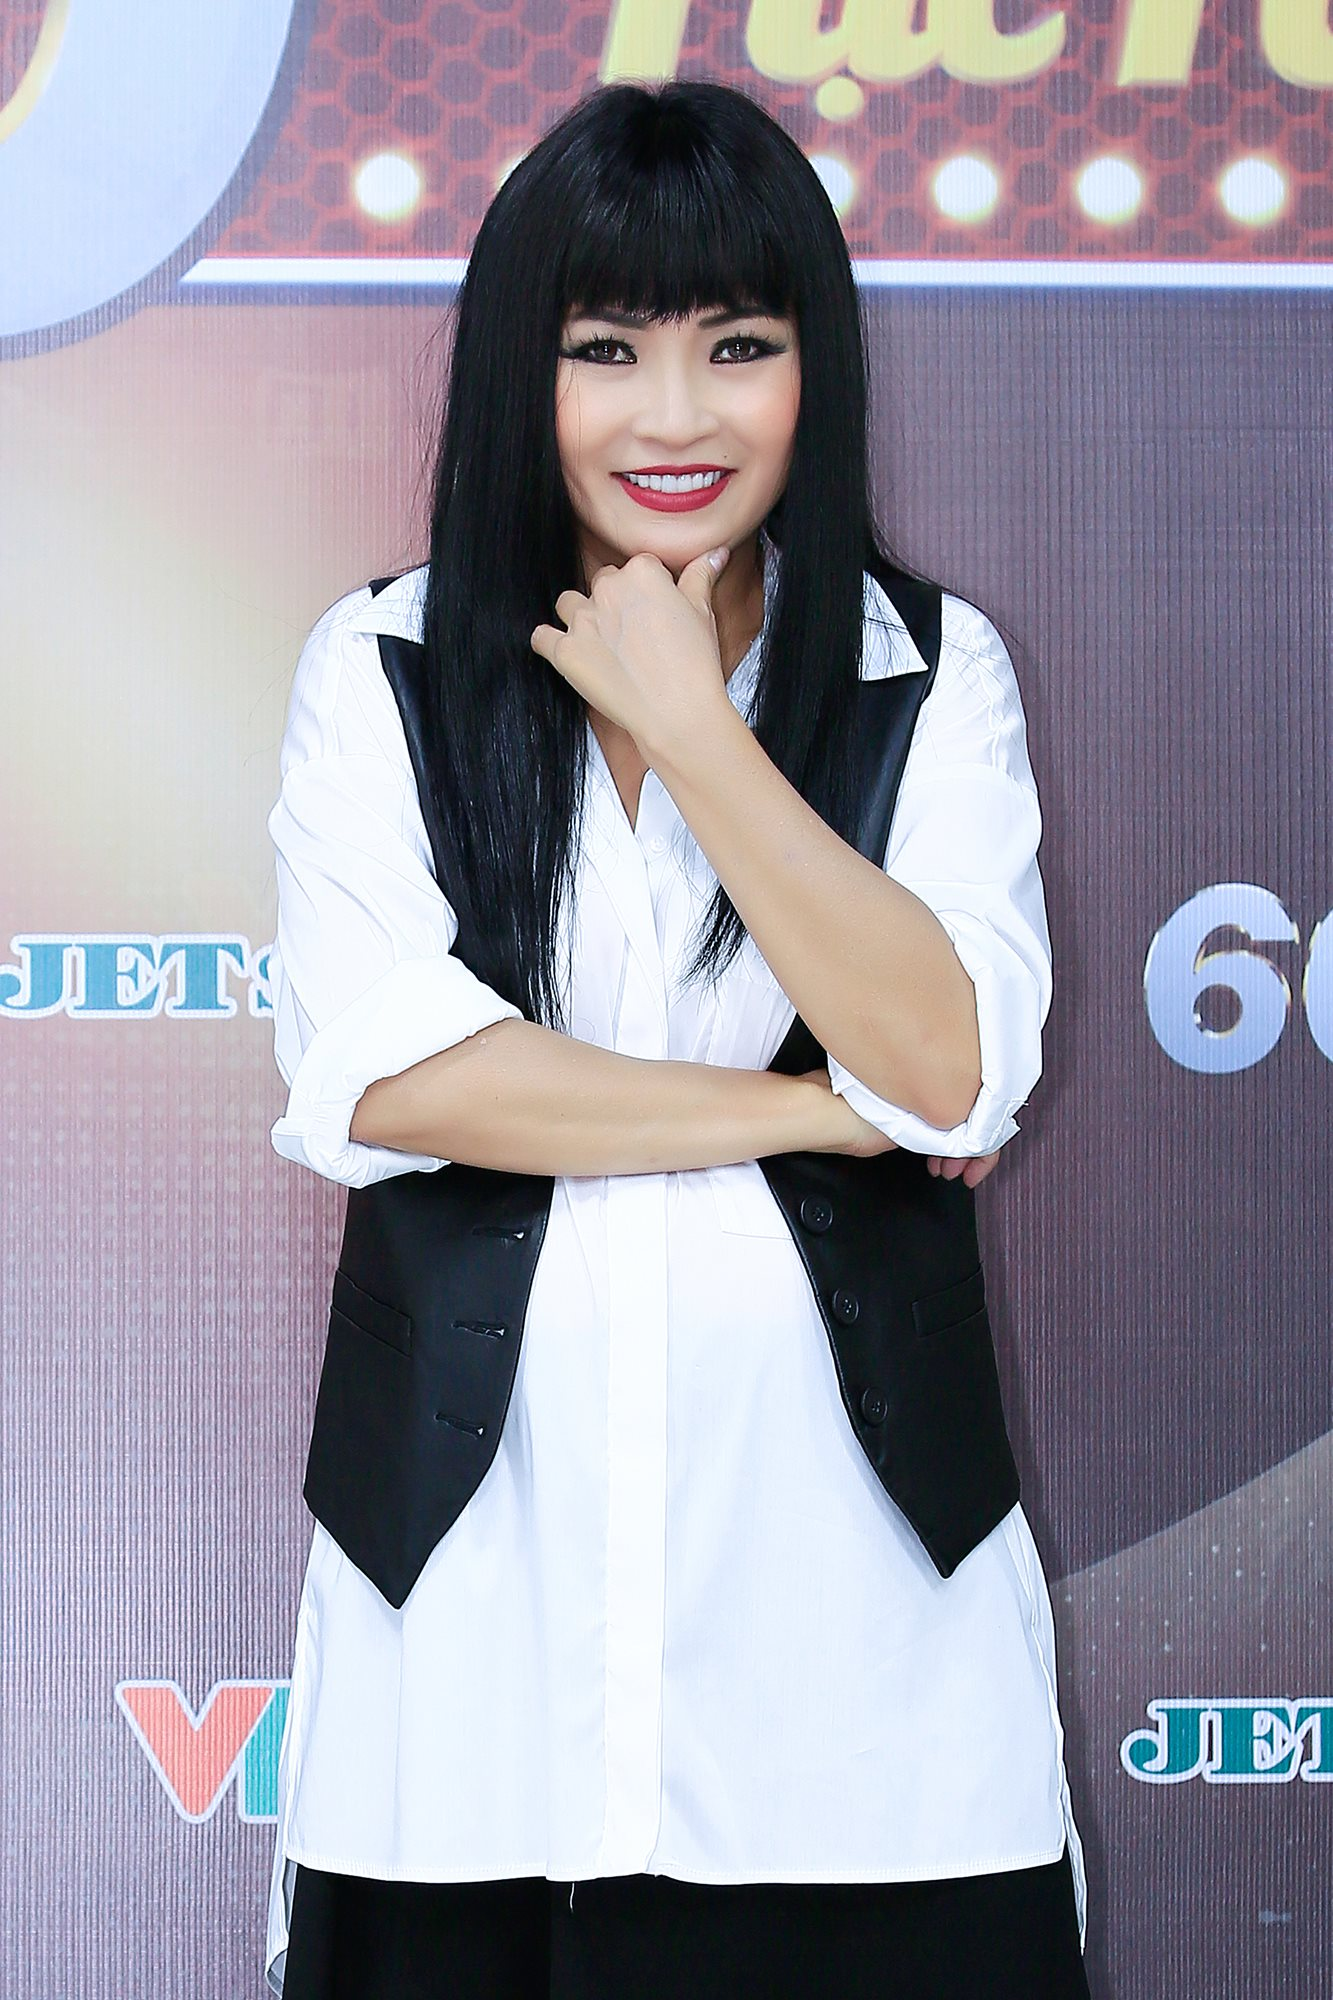 VOH-phuong-thanh-lam-truong-1